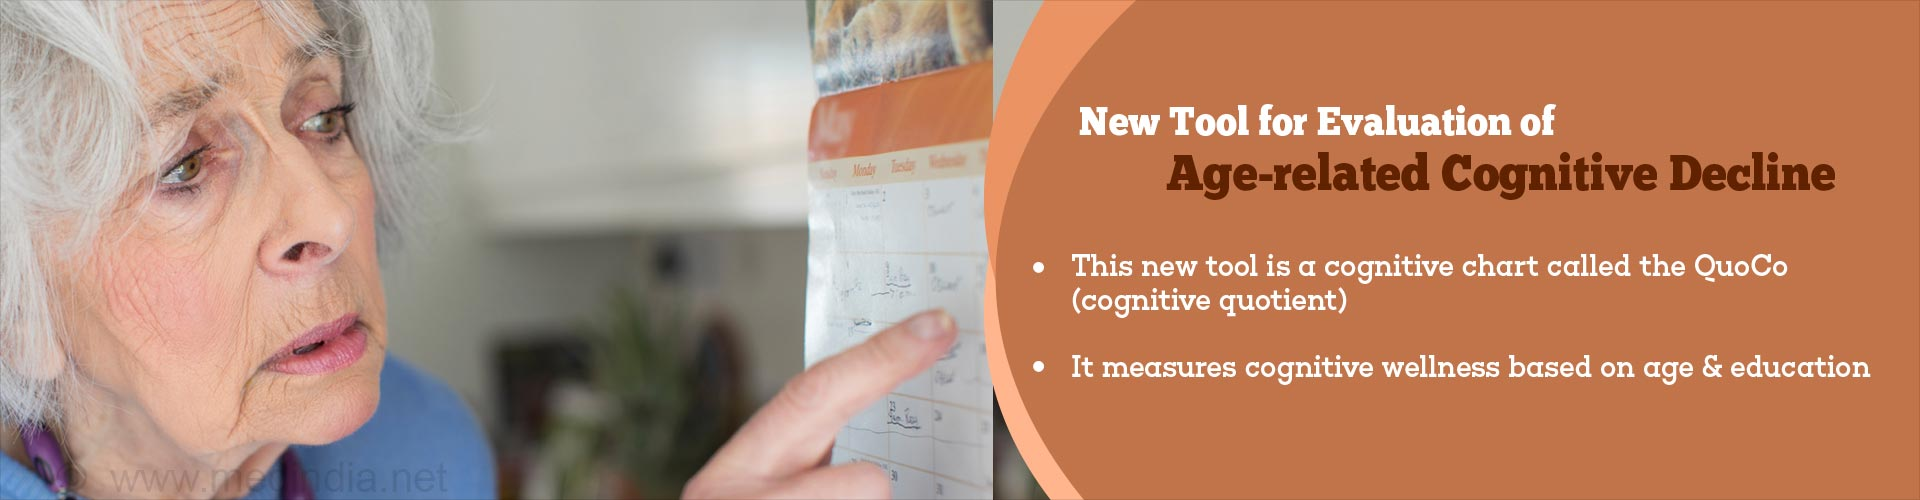 New Tool for Evaluation of Age-related Cognitive Decline